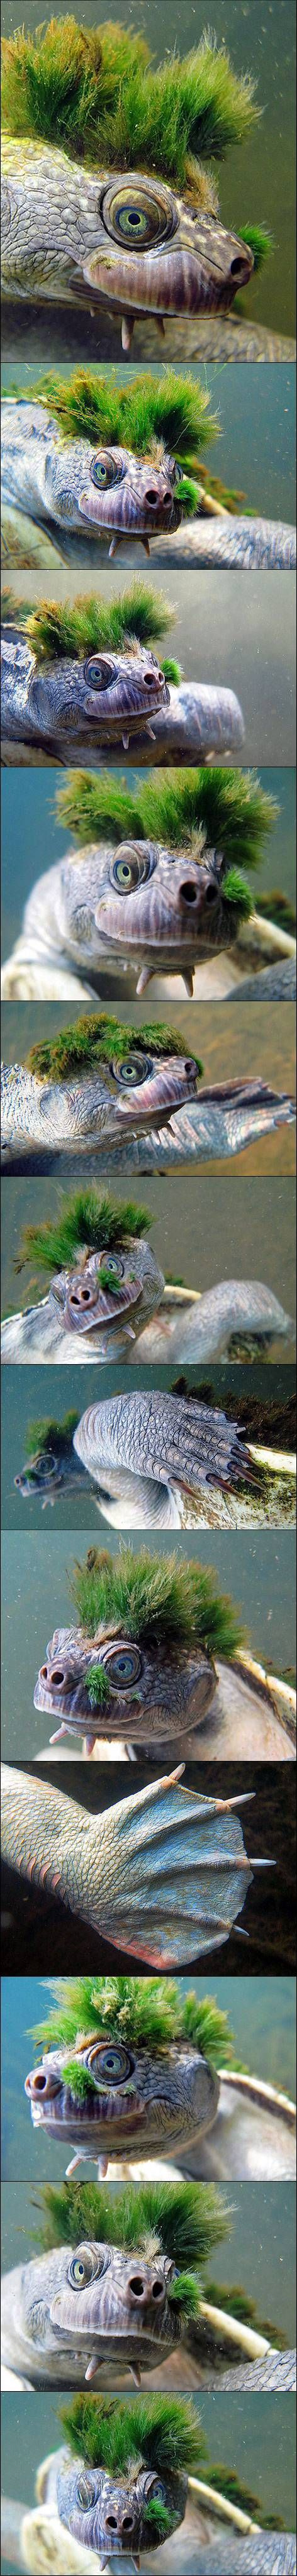 for your viewing pleasure, a million pictures of a Moss Turtle.